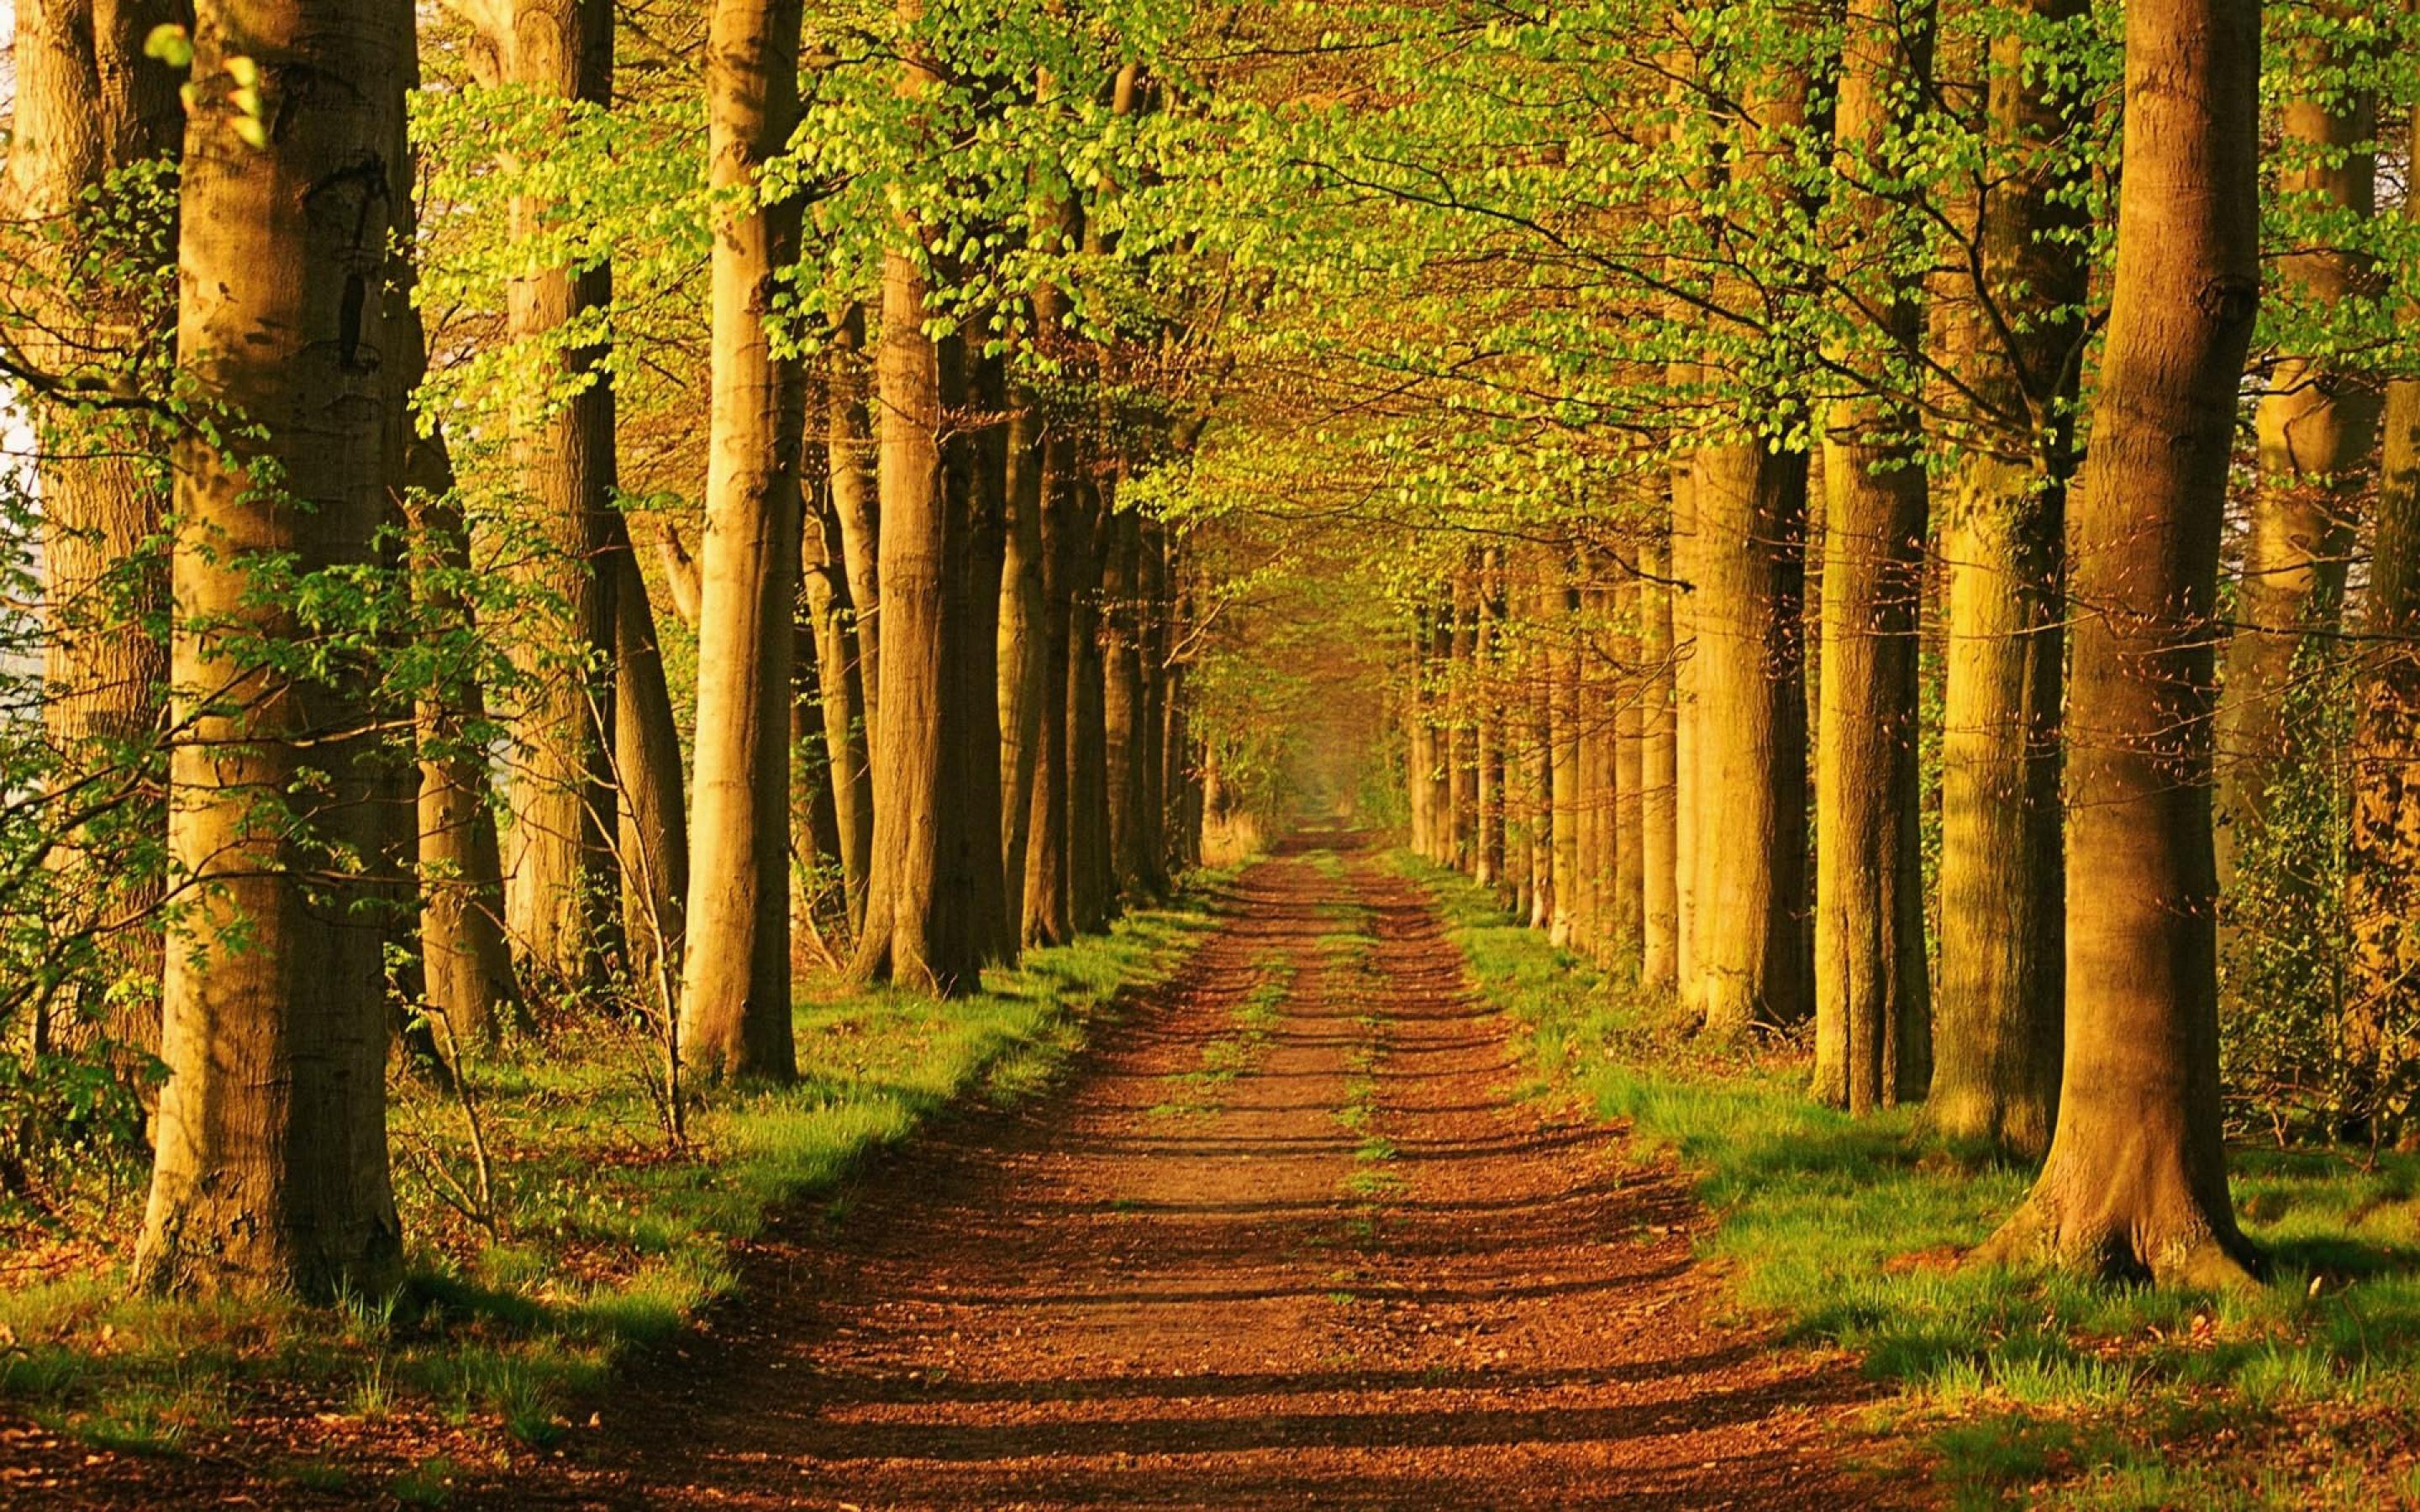 Trail clipart forest trail. Landscape wallpaper gallery yopriceville